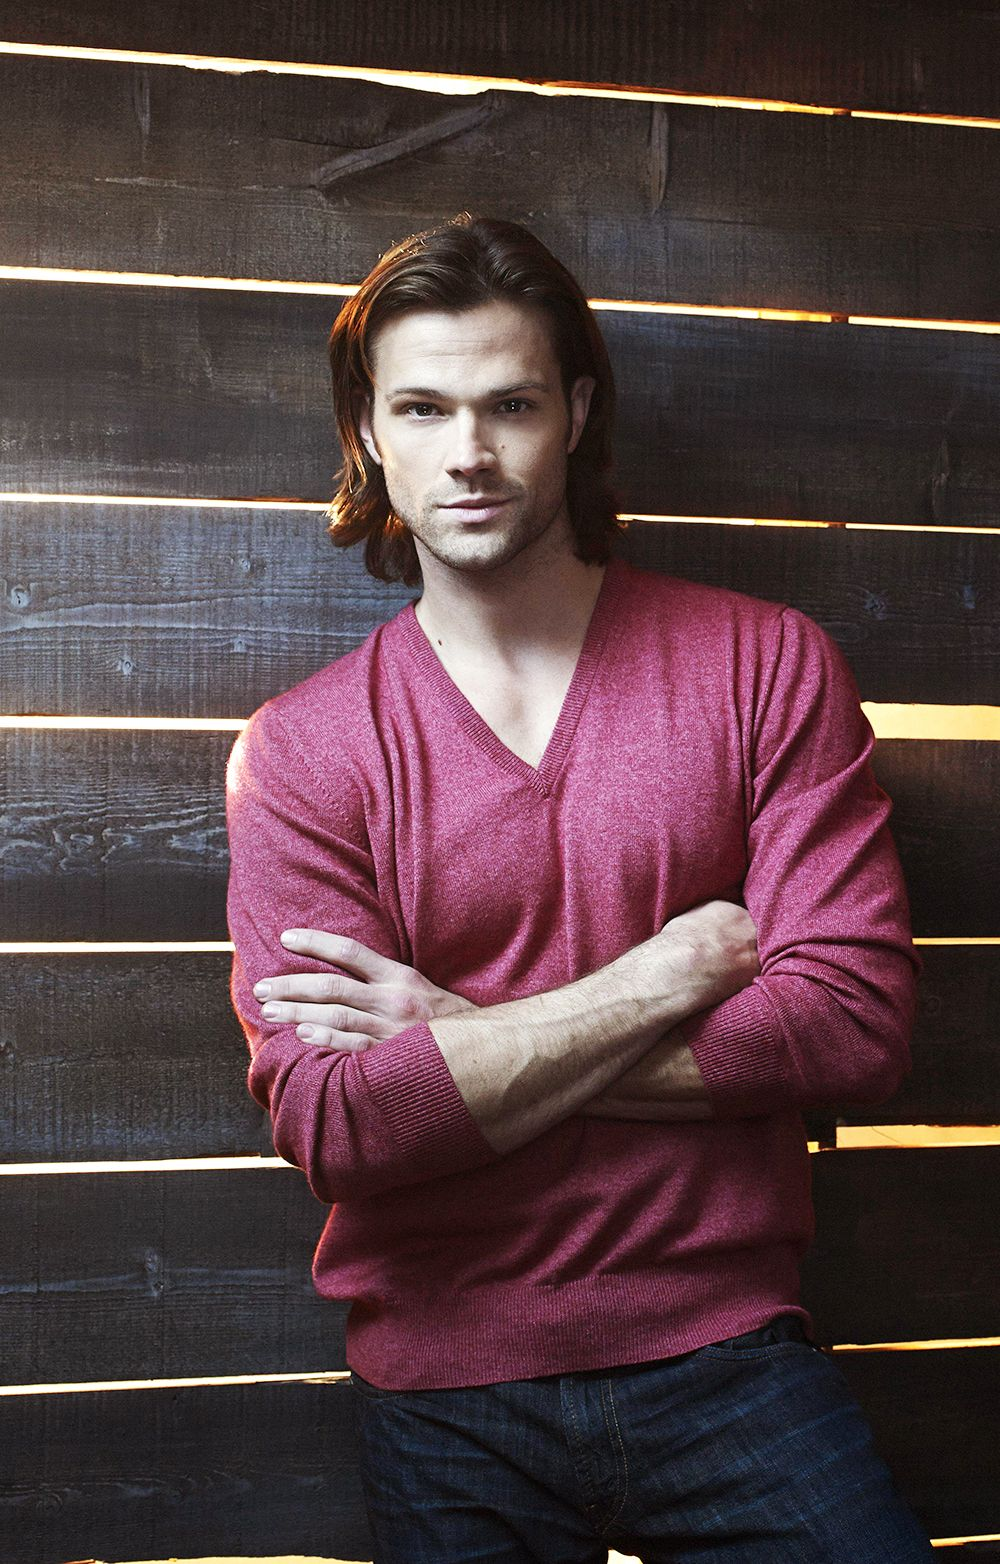 Jared padalecki supernatural season 9 promo ce jared jared padalecki supernatural season 9 promo ce voltagebd Image collections